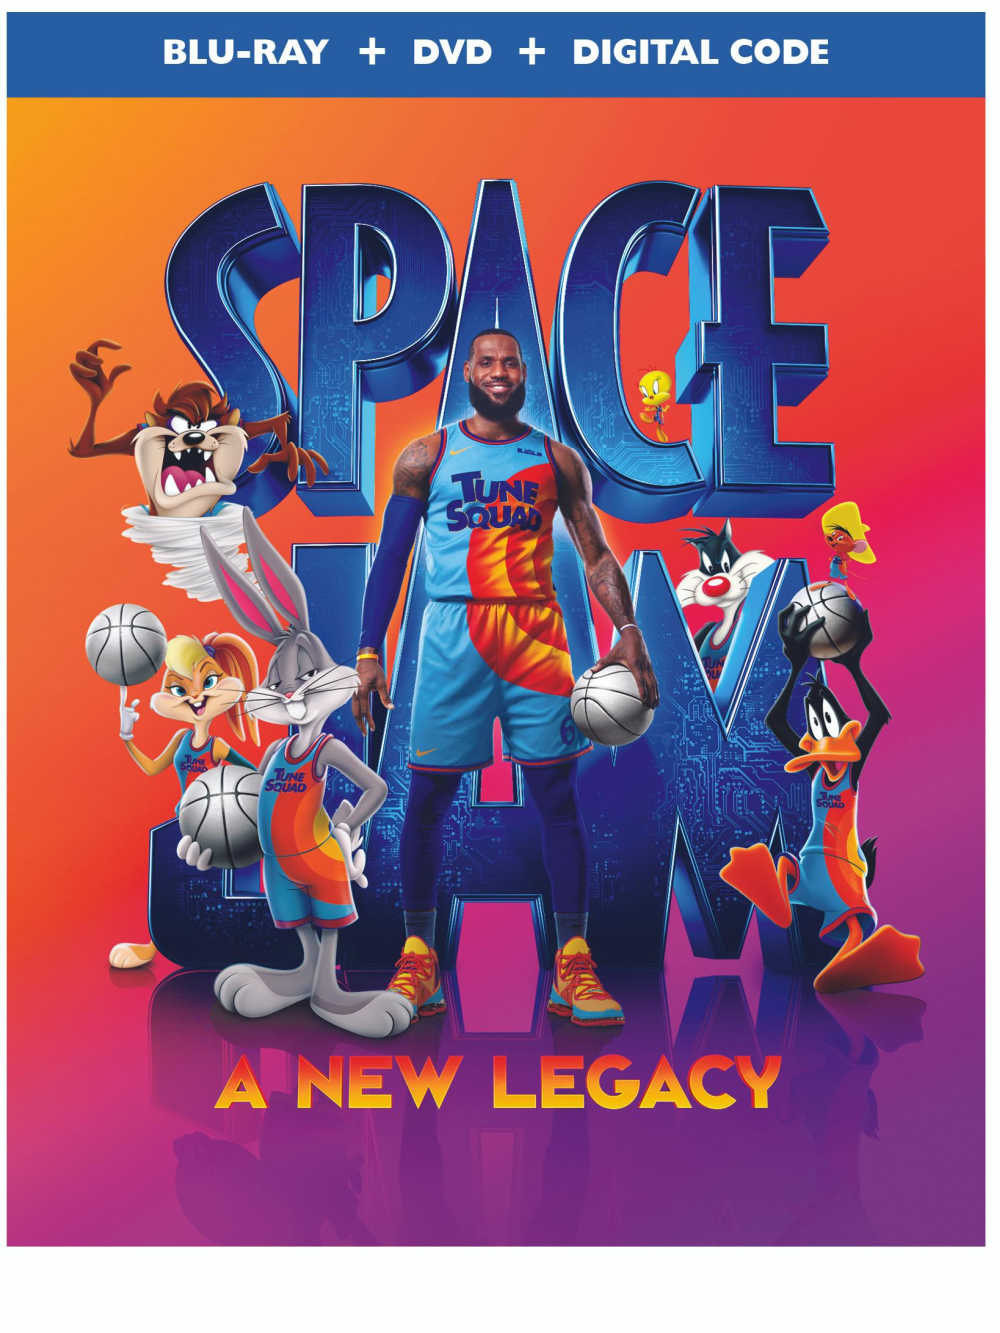 Finally, it's time to order your Space Jam 2 blu-ray, so you and your family can watch this new classic over and over again!